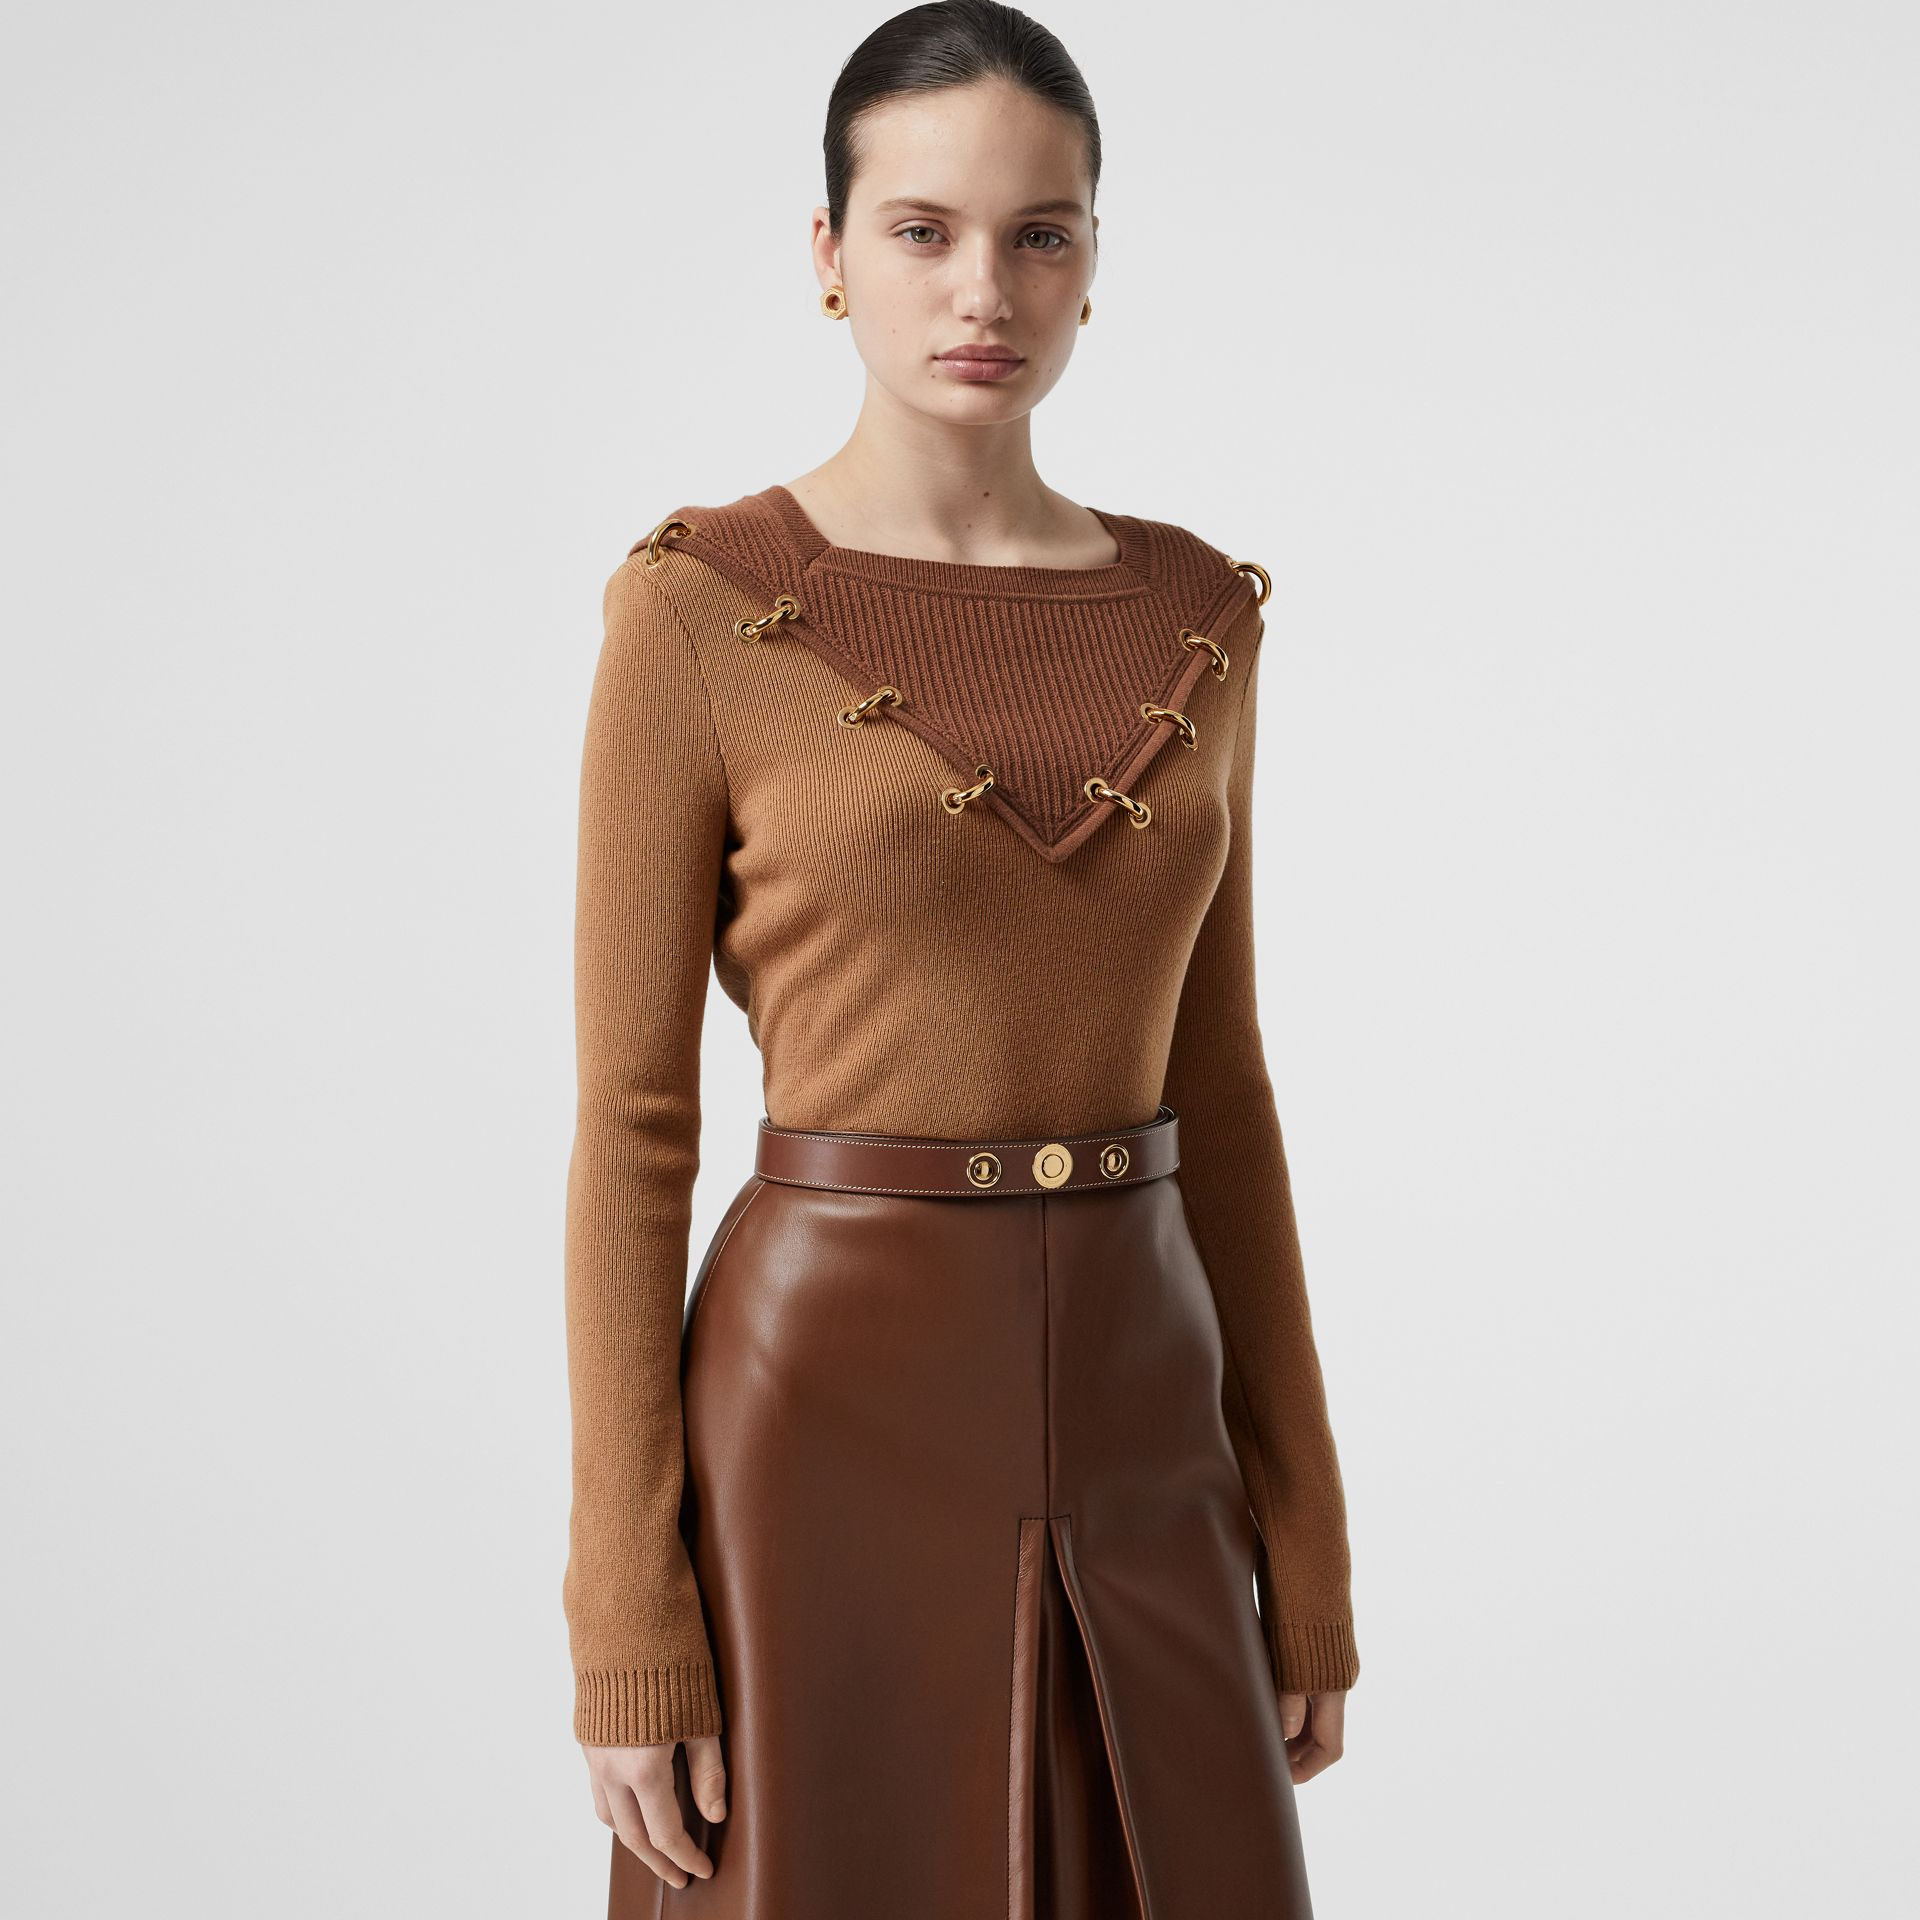 Ring-pierced Two-tone Wool Cashmere Sweater in Warm Camel - Women | Burberry United Kingdom - gallery image 4